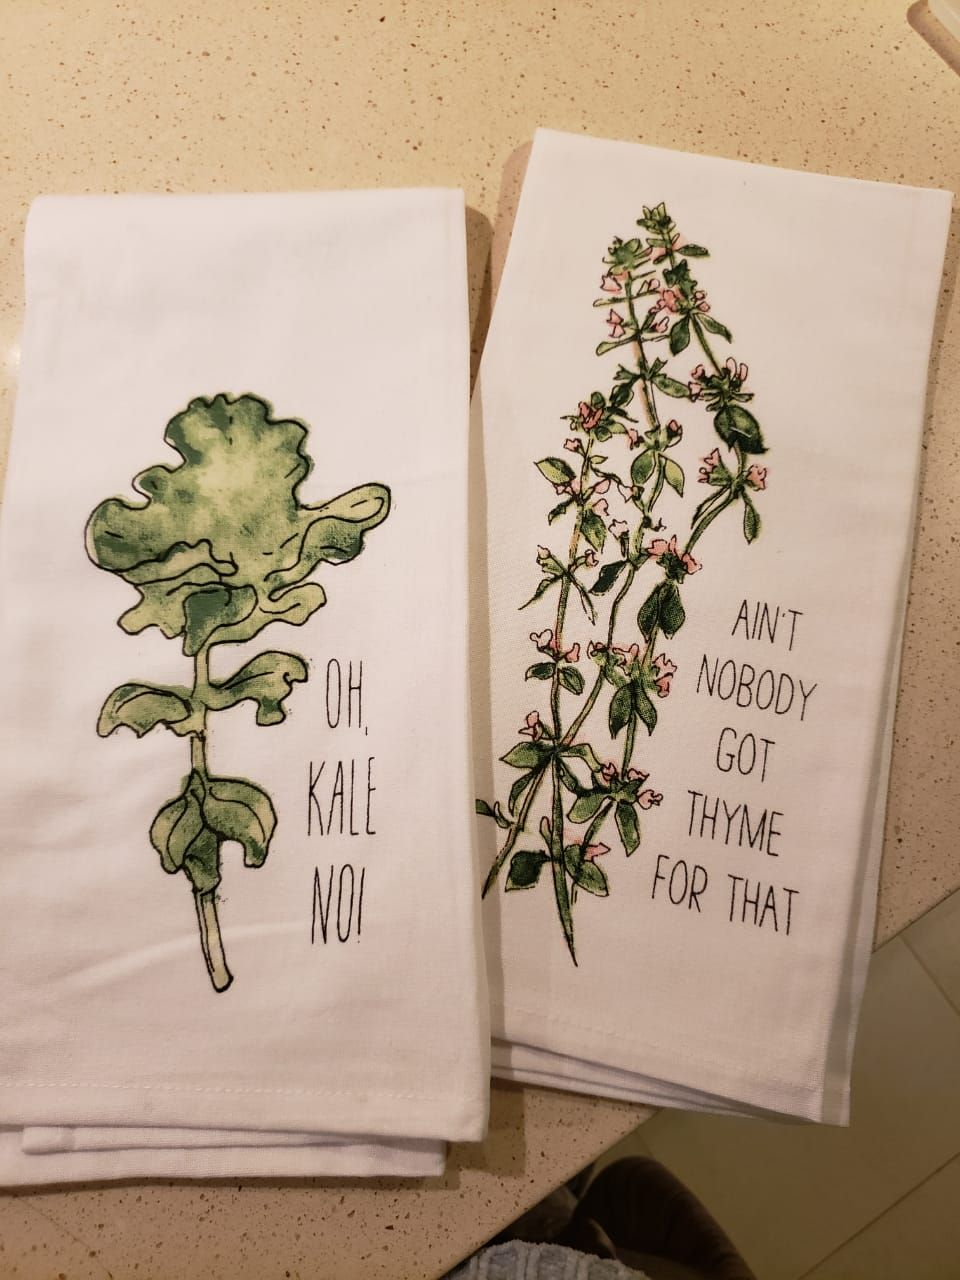 My mom bought some new kitchen towels